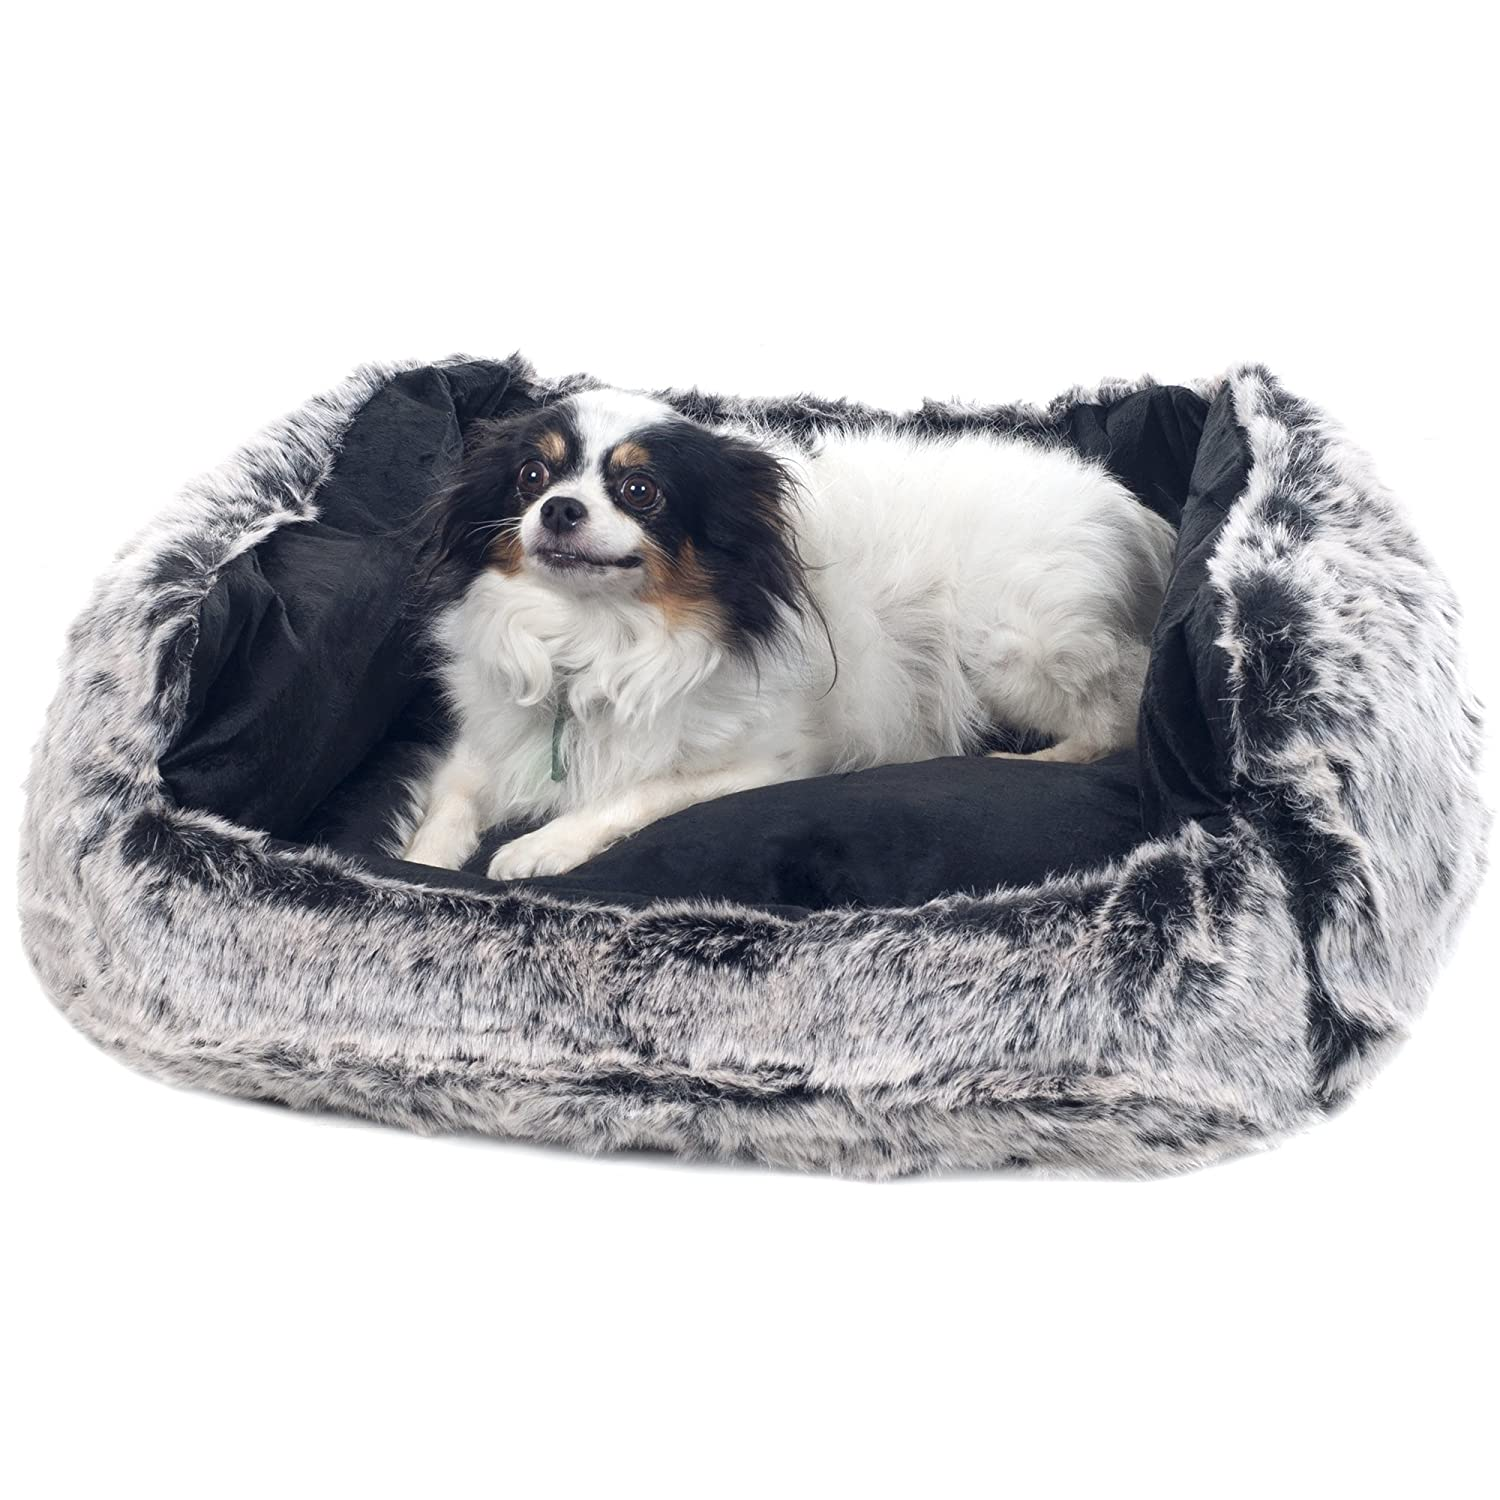 PETMAKER Small Faux Fur Black Mink Dog Bed, 23 x 19